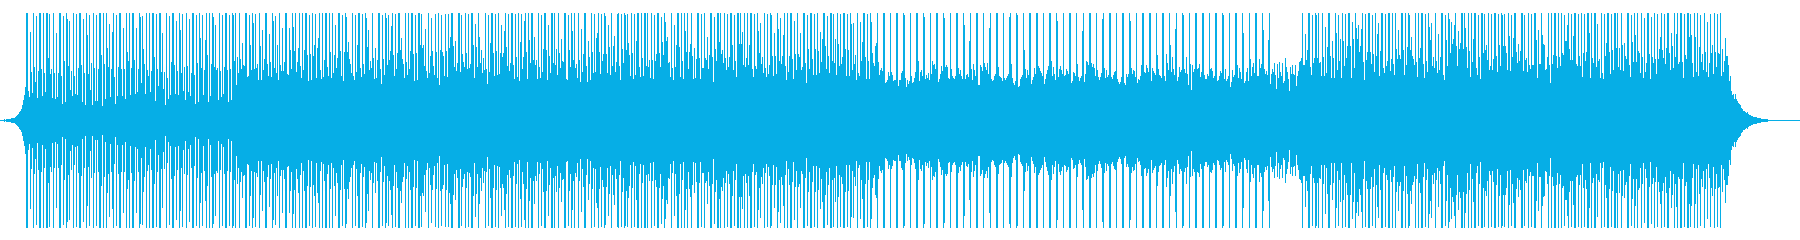 Serious Technology's reproduced waveform